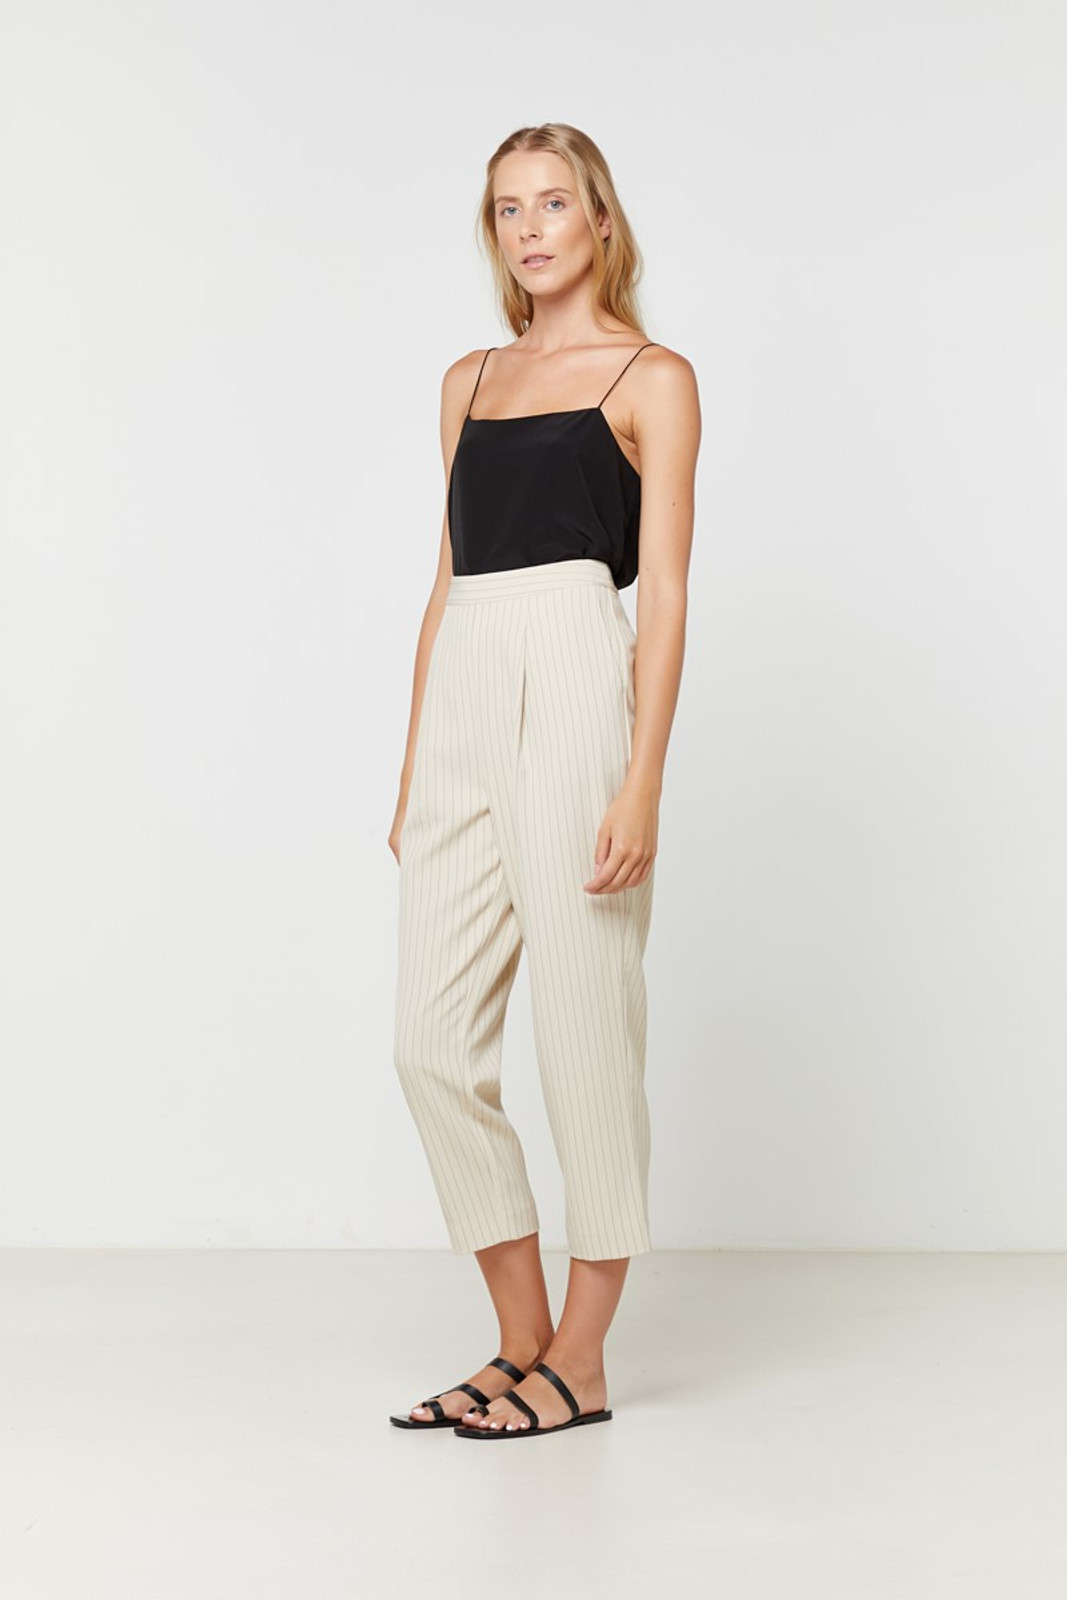 Elka Collective Everly Pant Neutrals  0